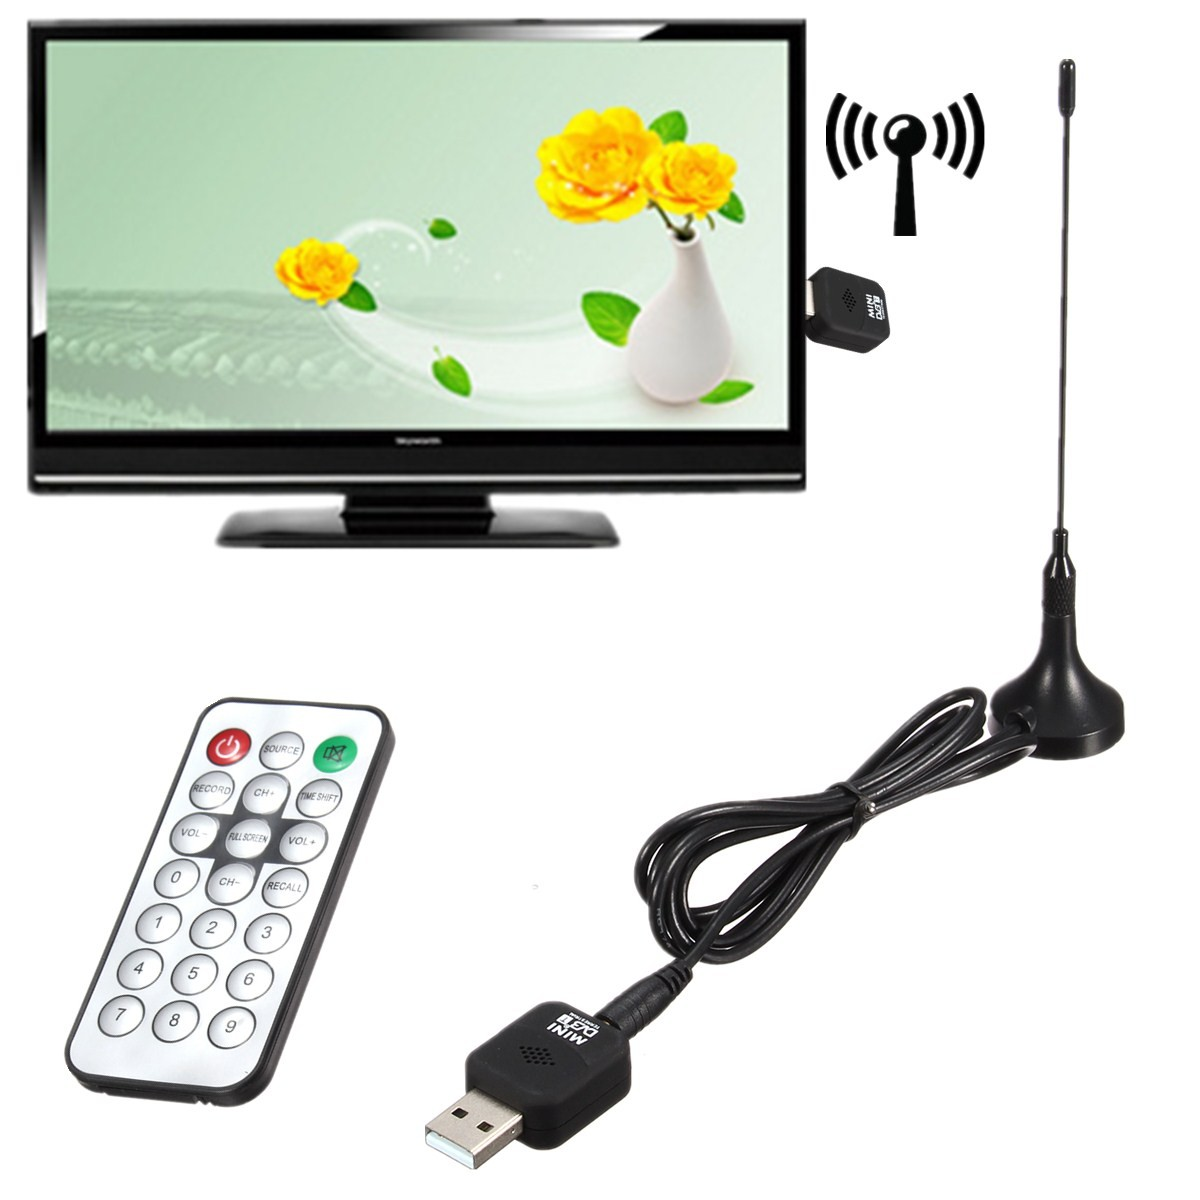 DVB-T Micro USB Tuner Mobile TV Receiver Stick Digital Tv Tuner For Windows 2000 / XP / Vista 32Bit / Win 7(China (Mainland))